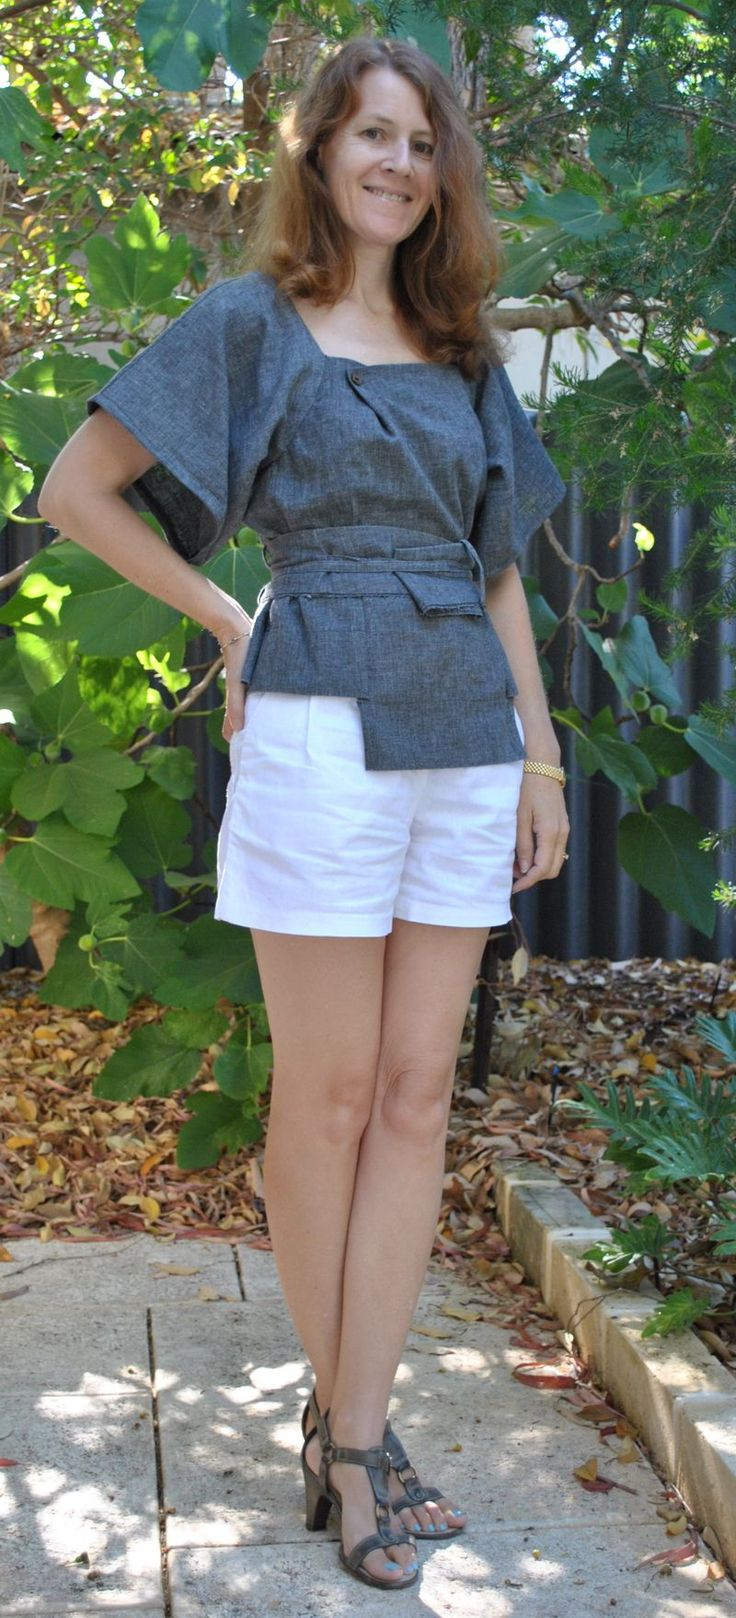 pants to top: Wardrobes Refashion, Clothing Diy, Upcycled Ideas, Refashion Ideas, Diy Tops, Asymmetrical Tops, Diy Clothing, Upcycled Refashion, Upcycled Clothing